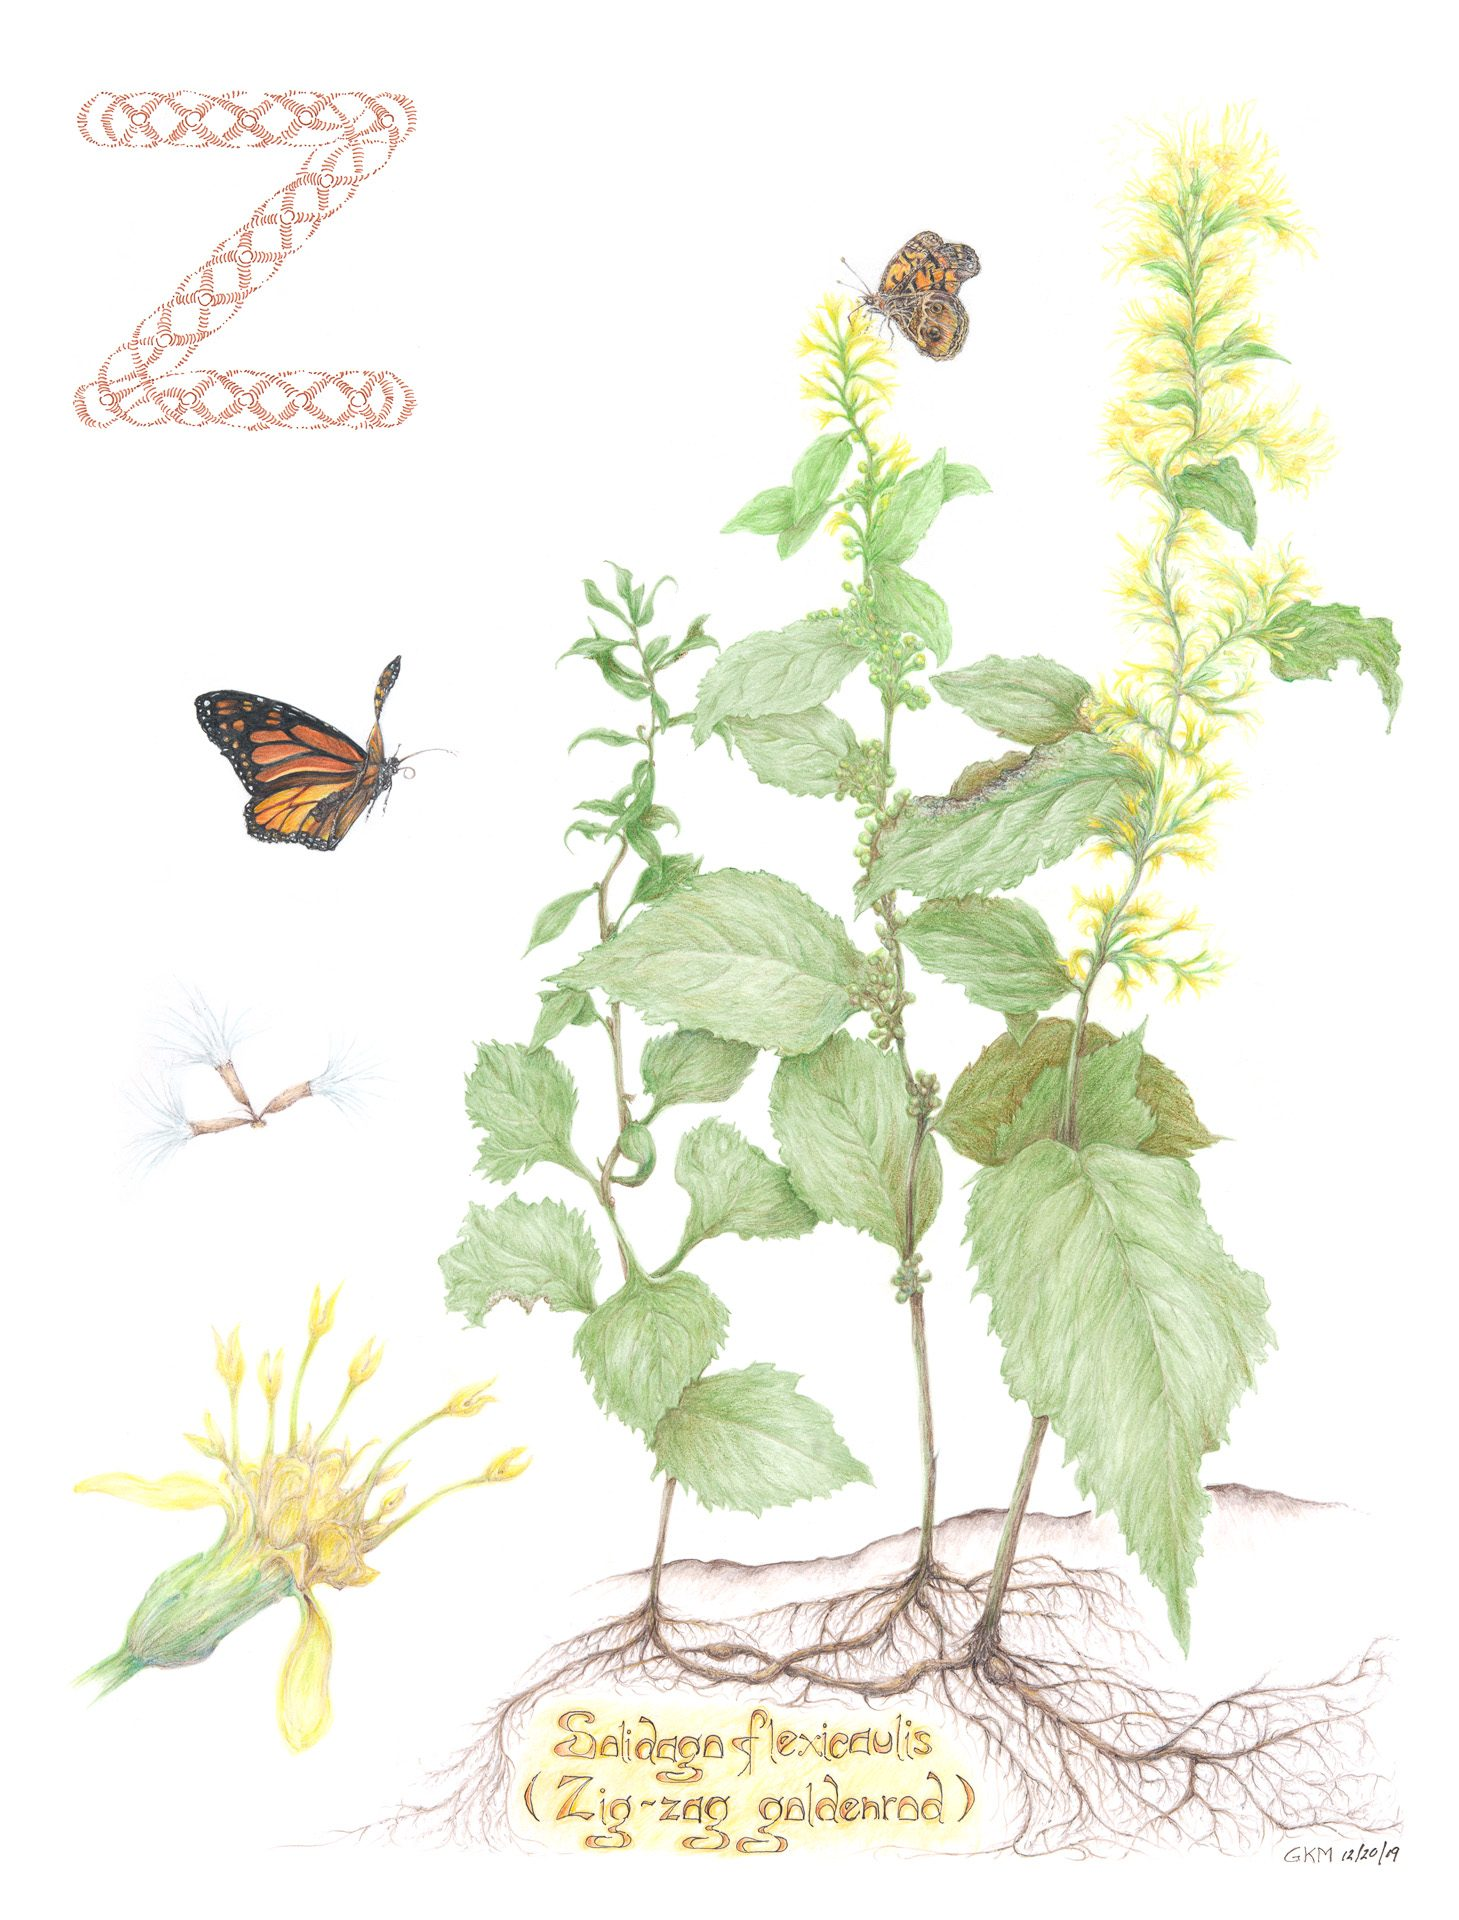 Zigzag goldenrod, Solidago flexicaulis, Colored pencil by Gordon McLean